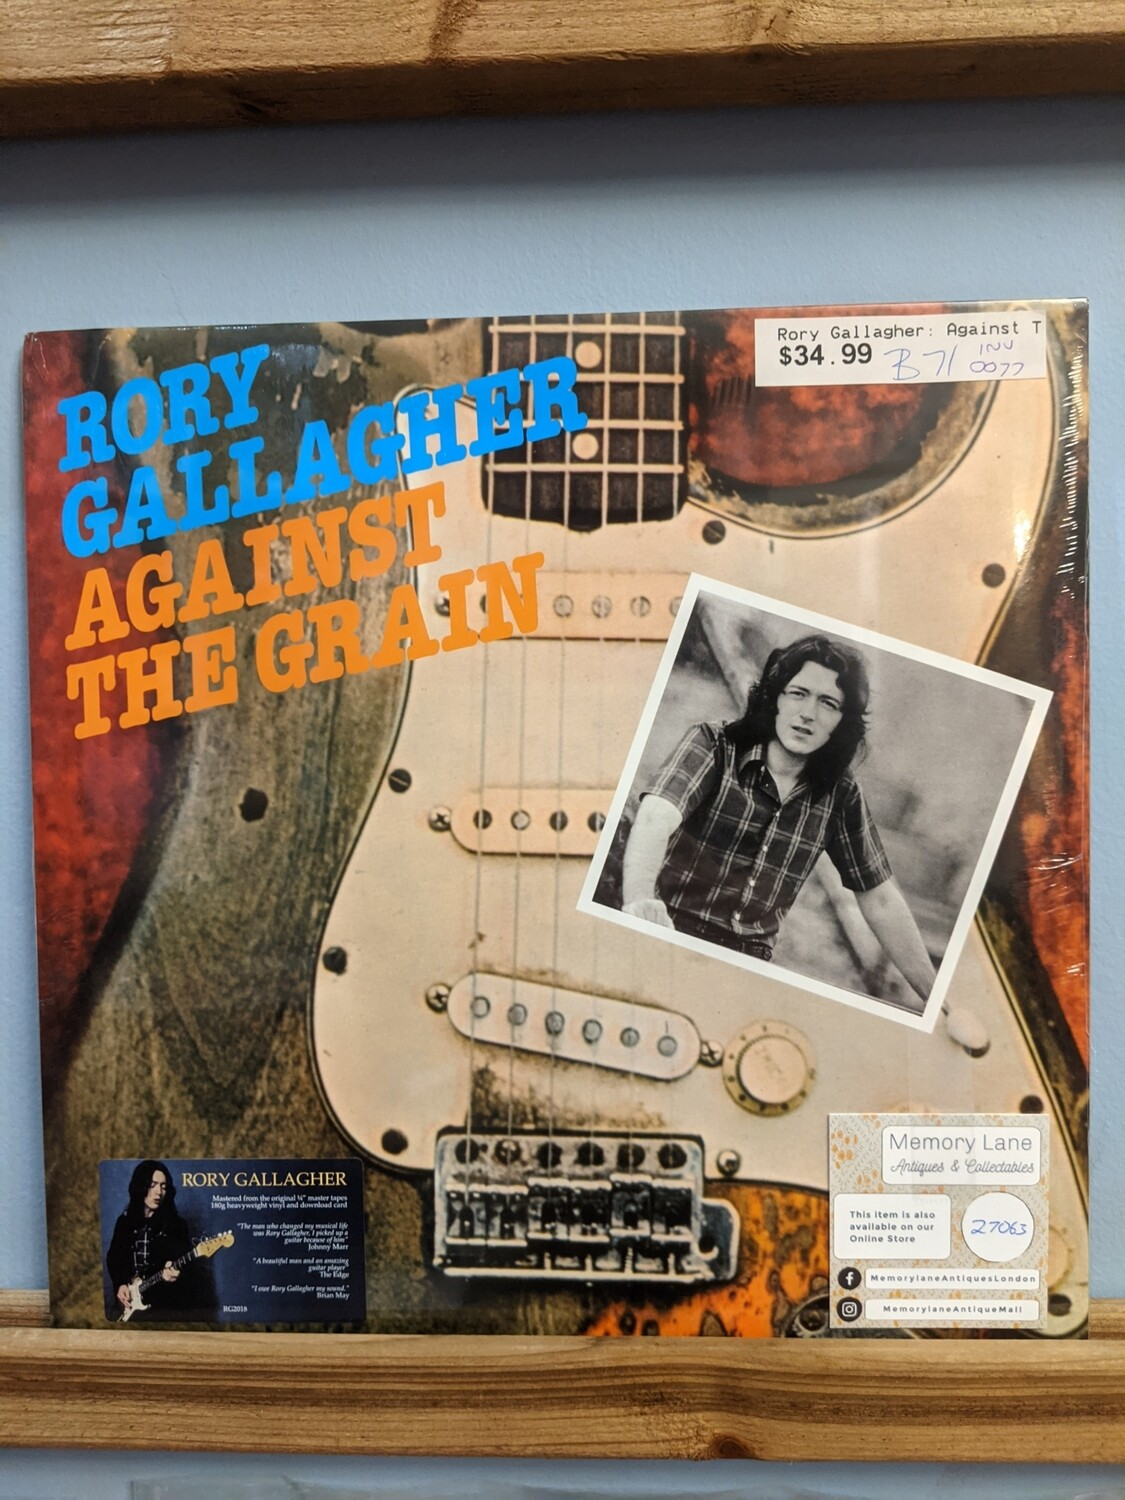 Rory Gallagher - LP - Against The Grain